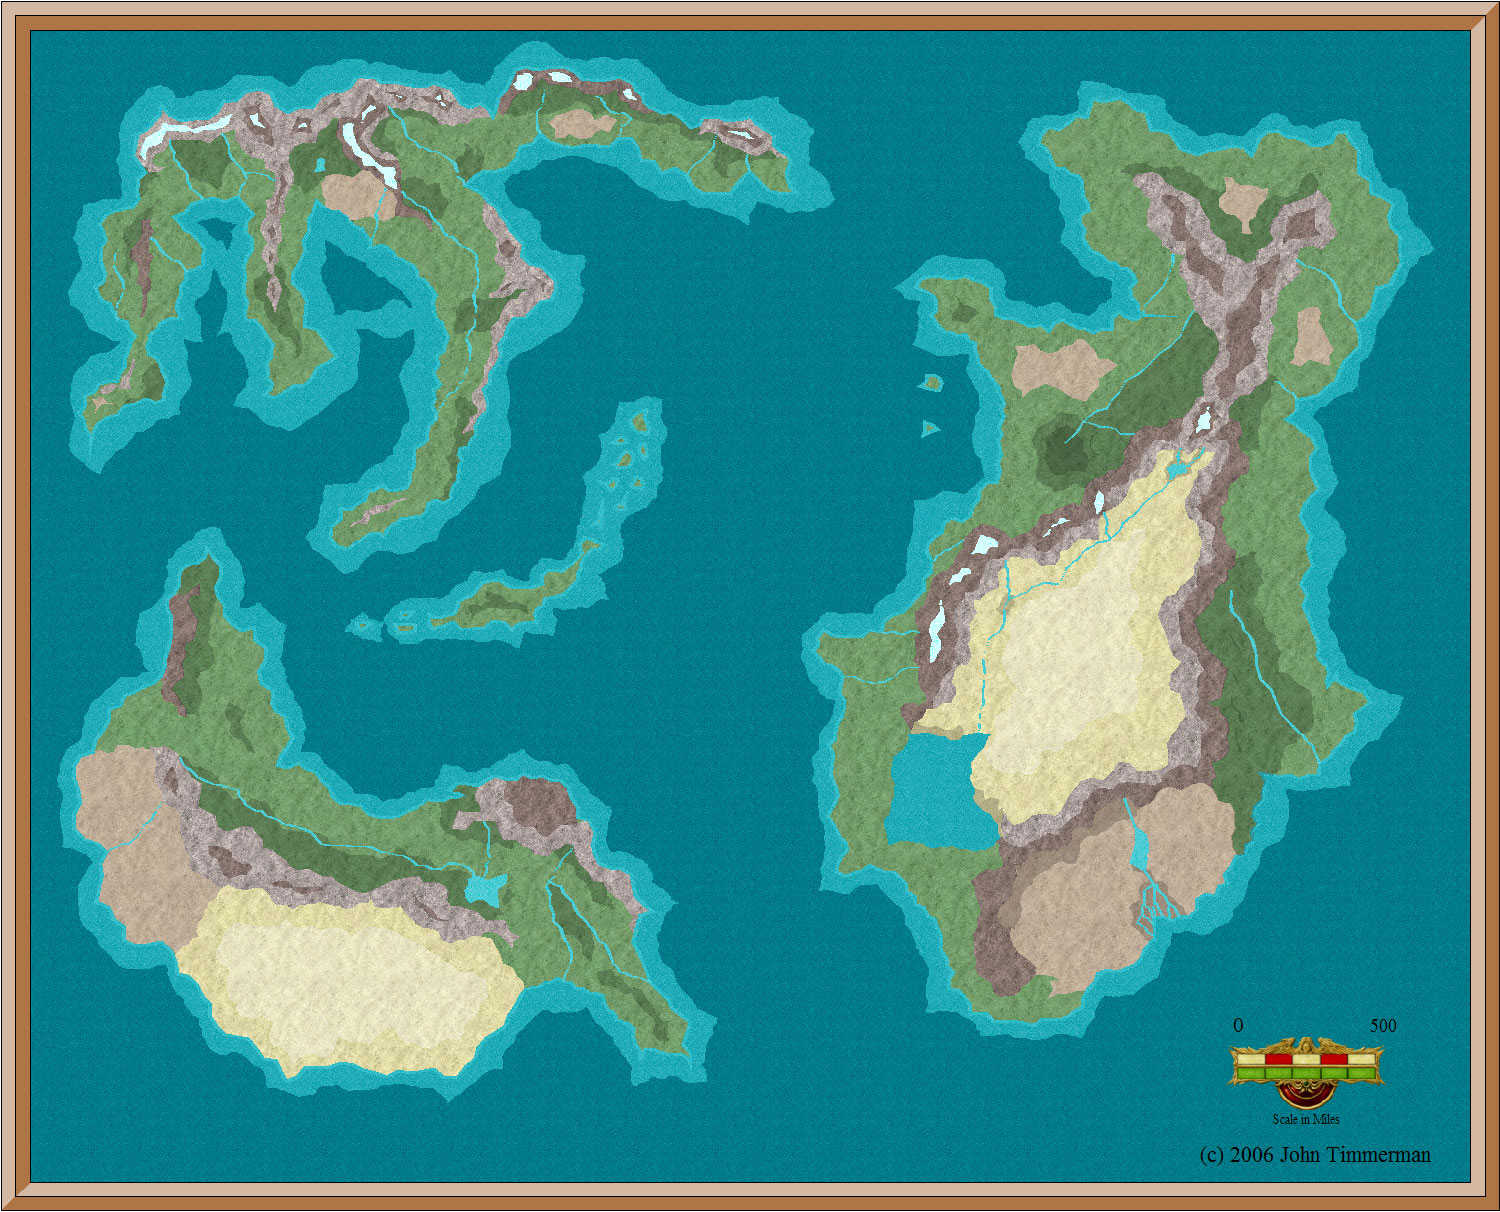 Fantasy world map 2 free fantasy maps fantasy world map 2 gumiabroncs Image collections